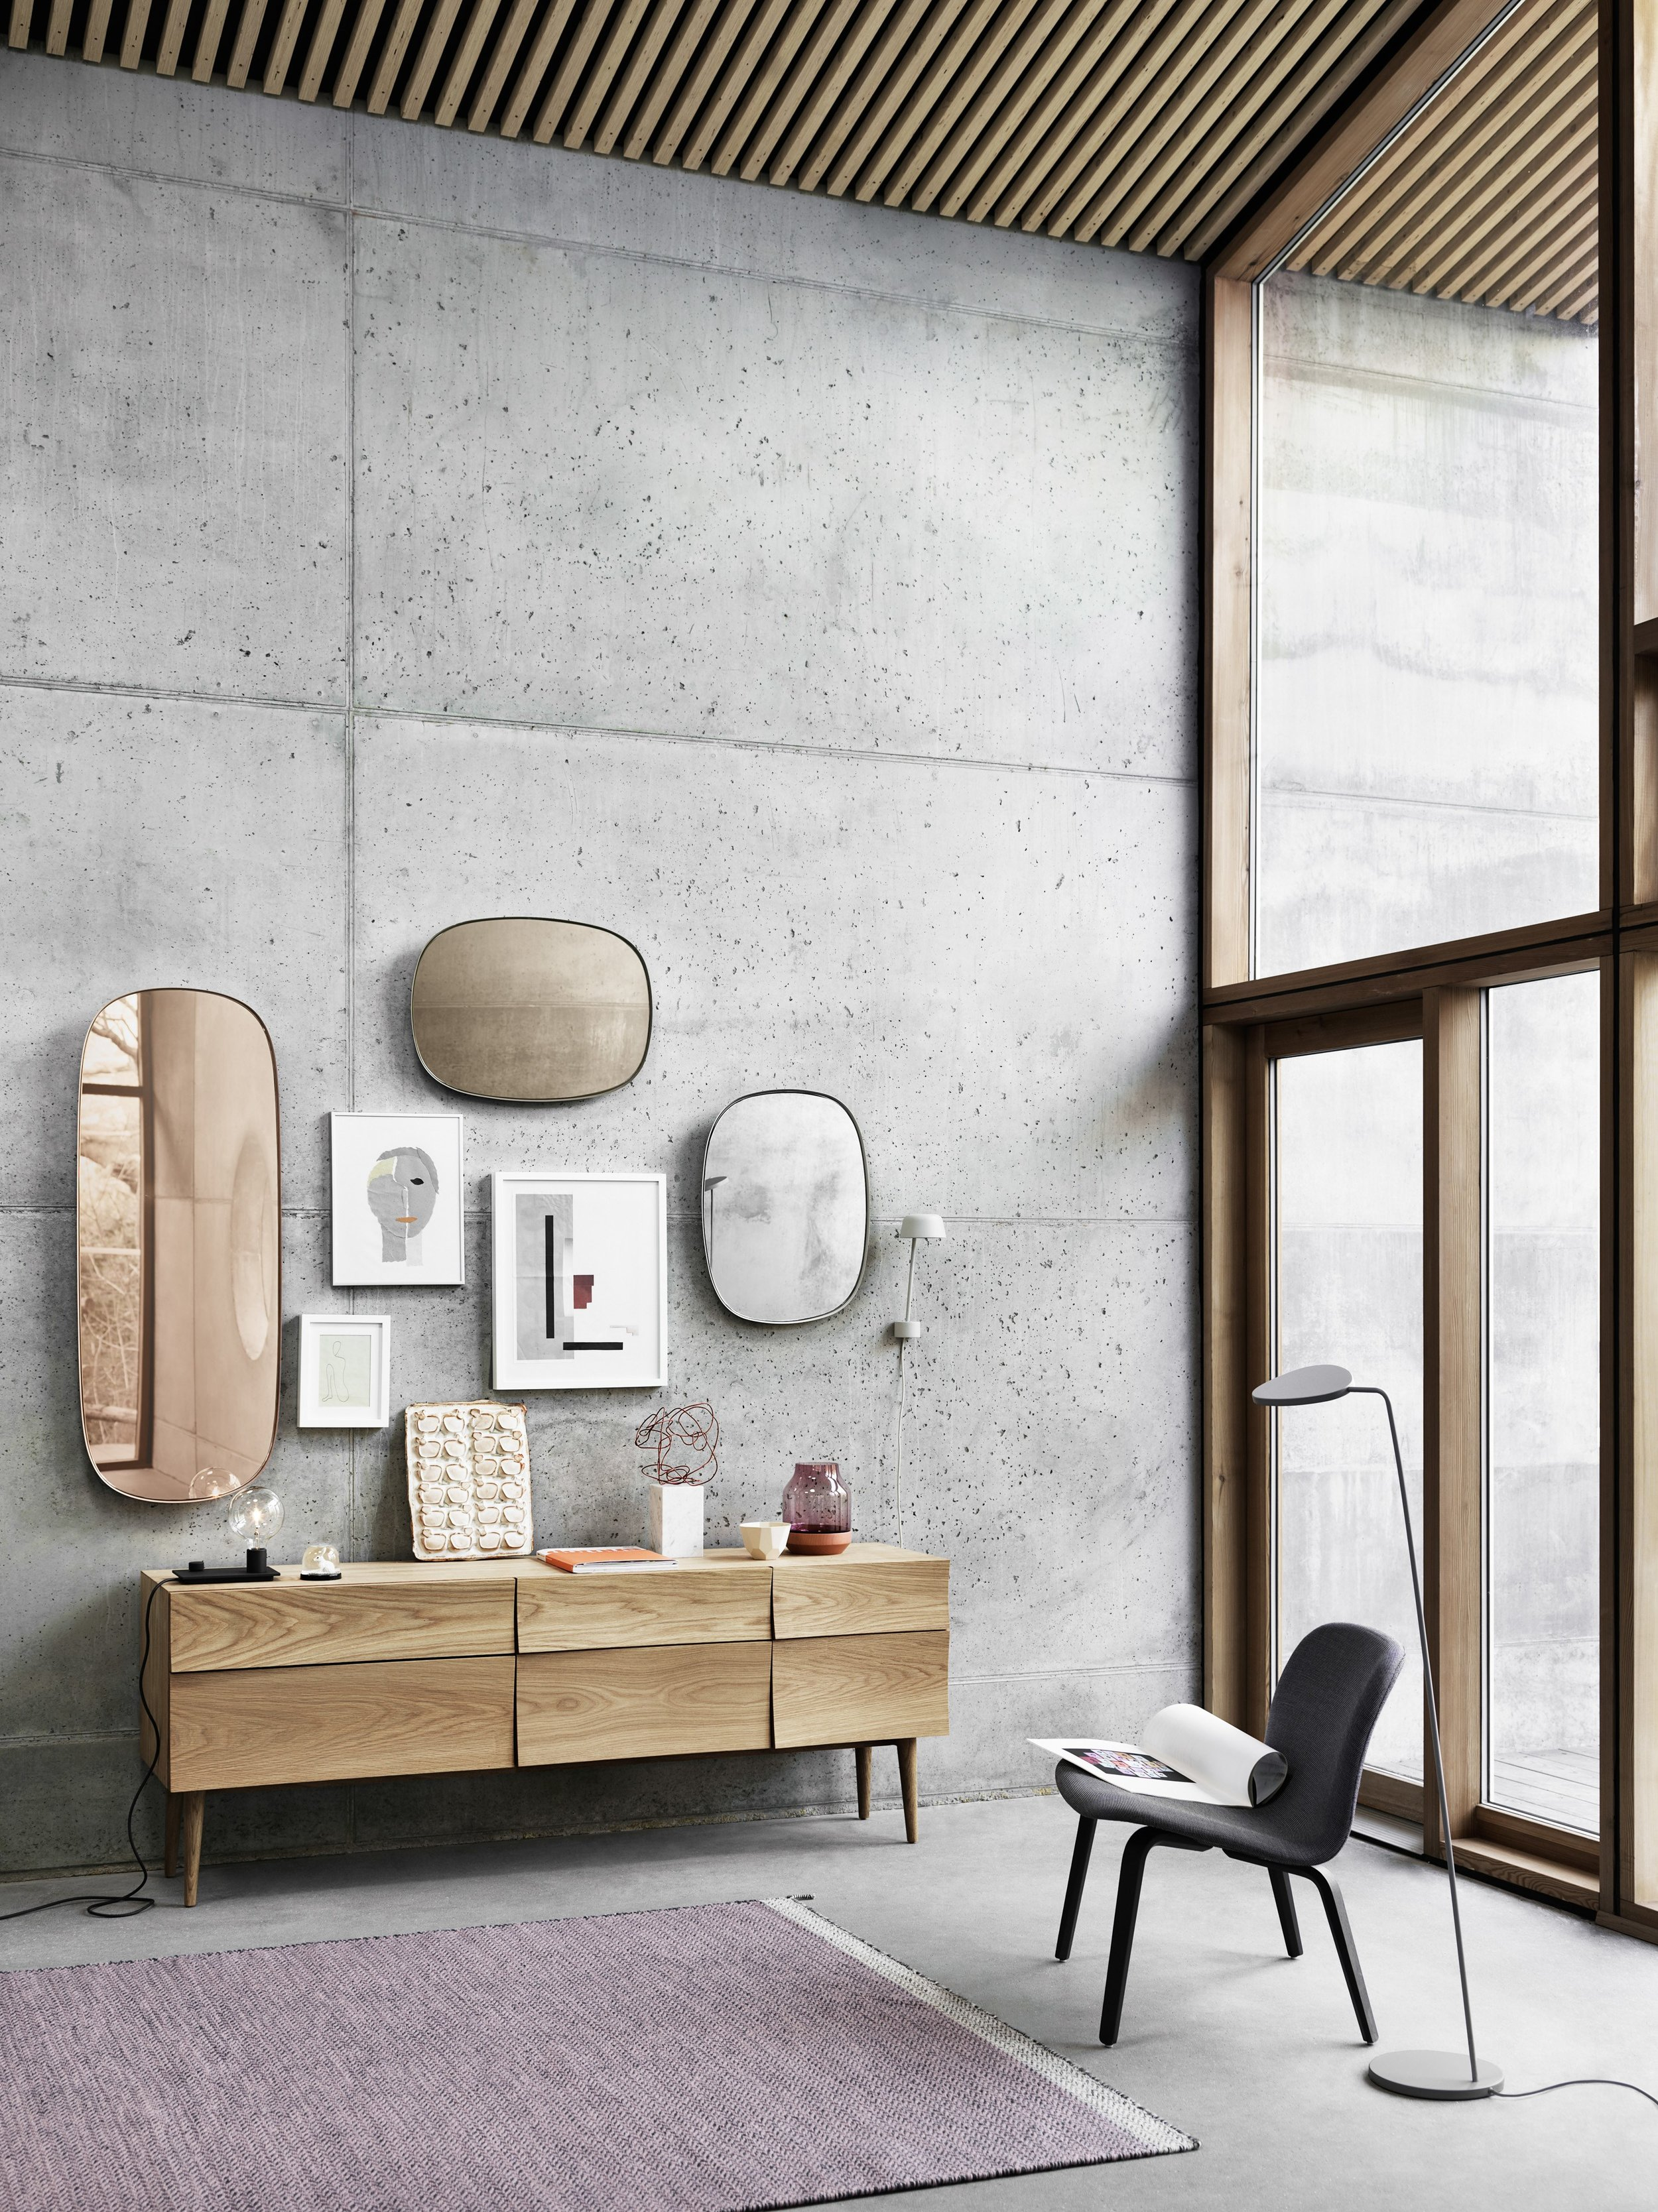 Framed_Mirrors_Reflect_Sideboard_Lean_Lamp_Ply_Rose_Visu_Lounge_Umami_743_med-res.jpg